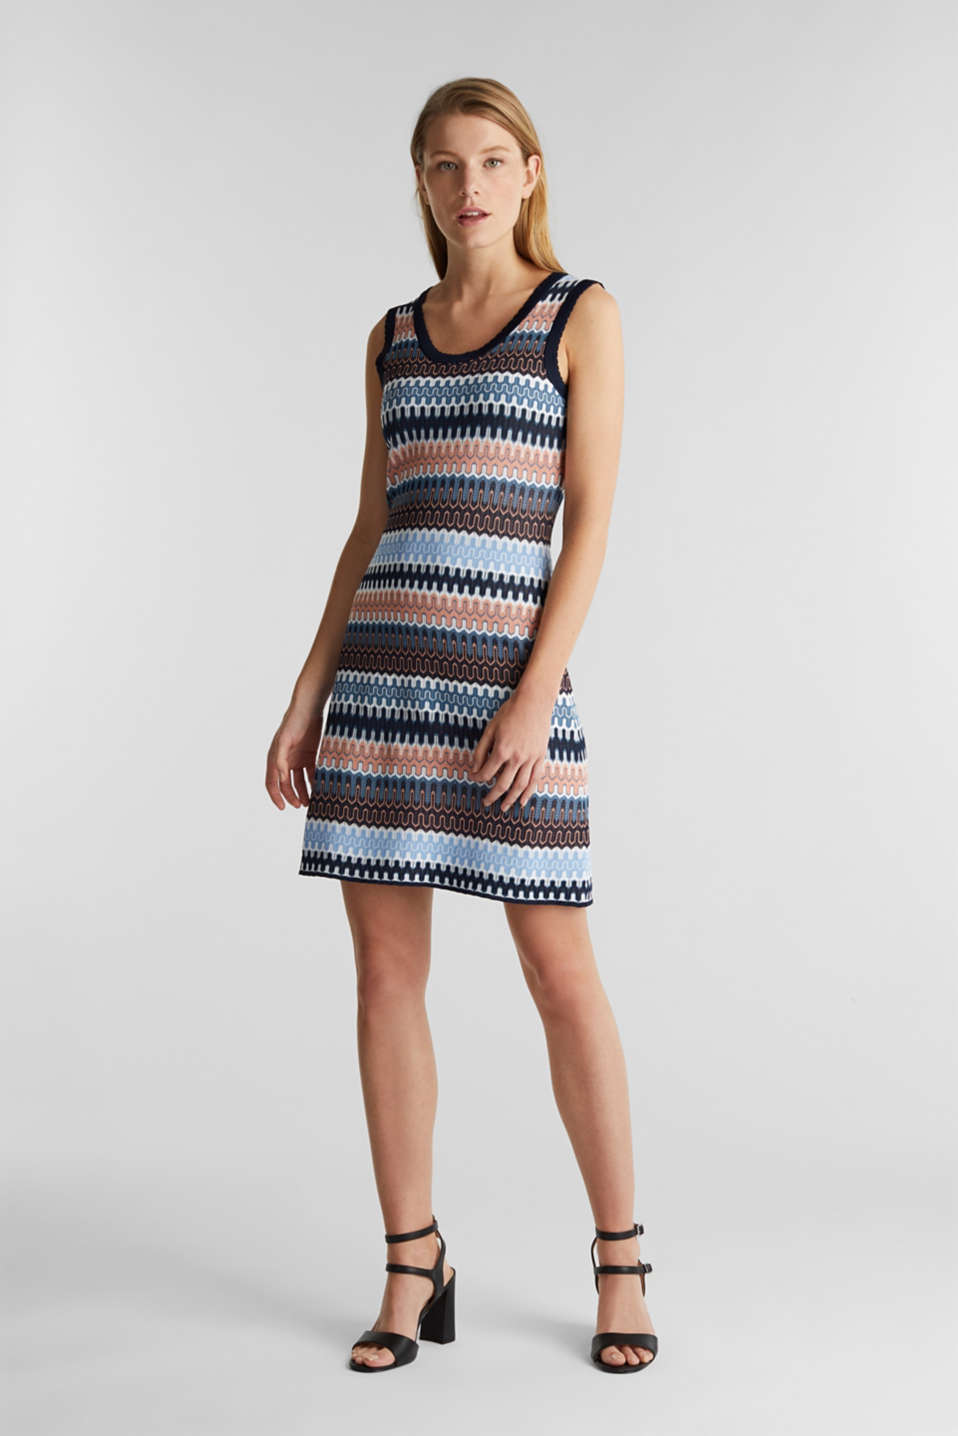 Knit dress with a jacquard pattern, NAVY, detail image number 1